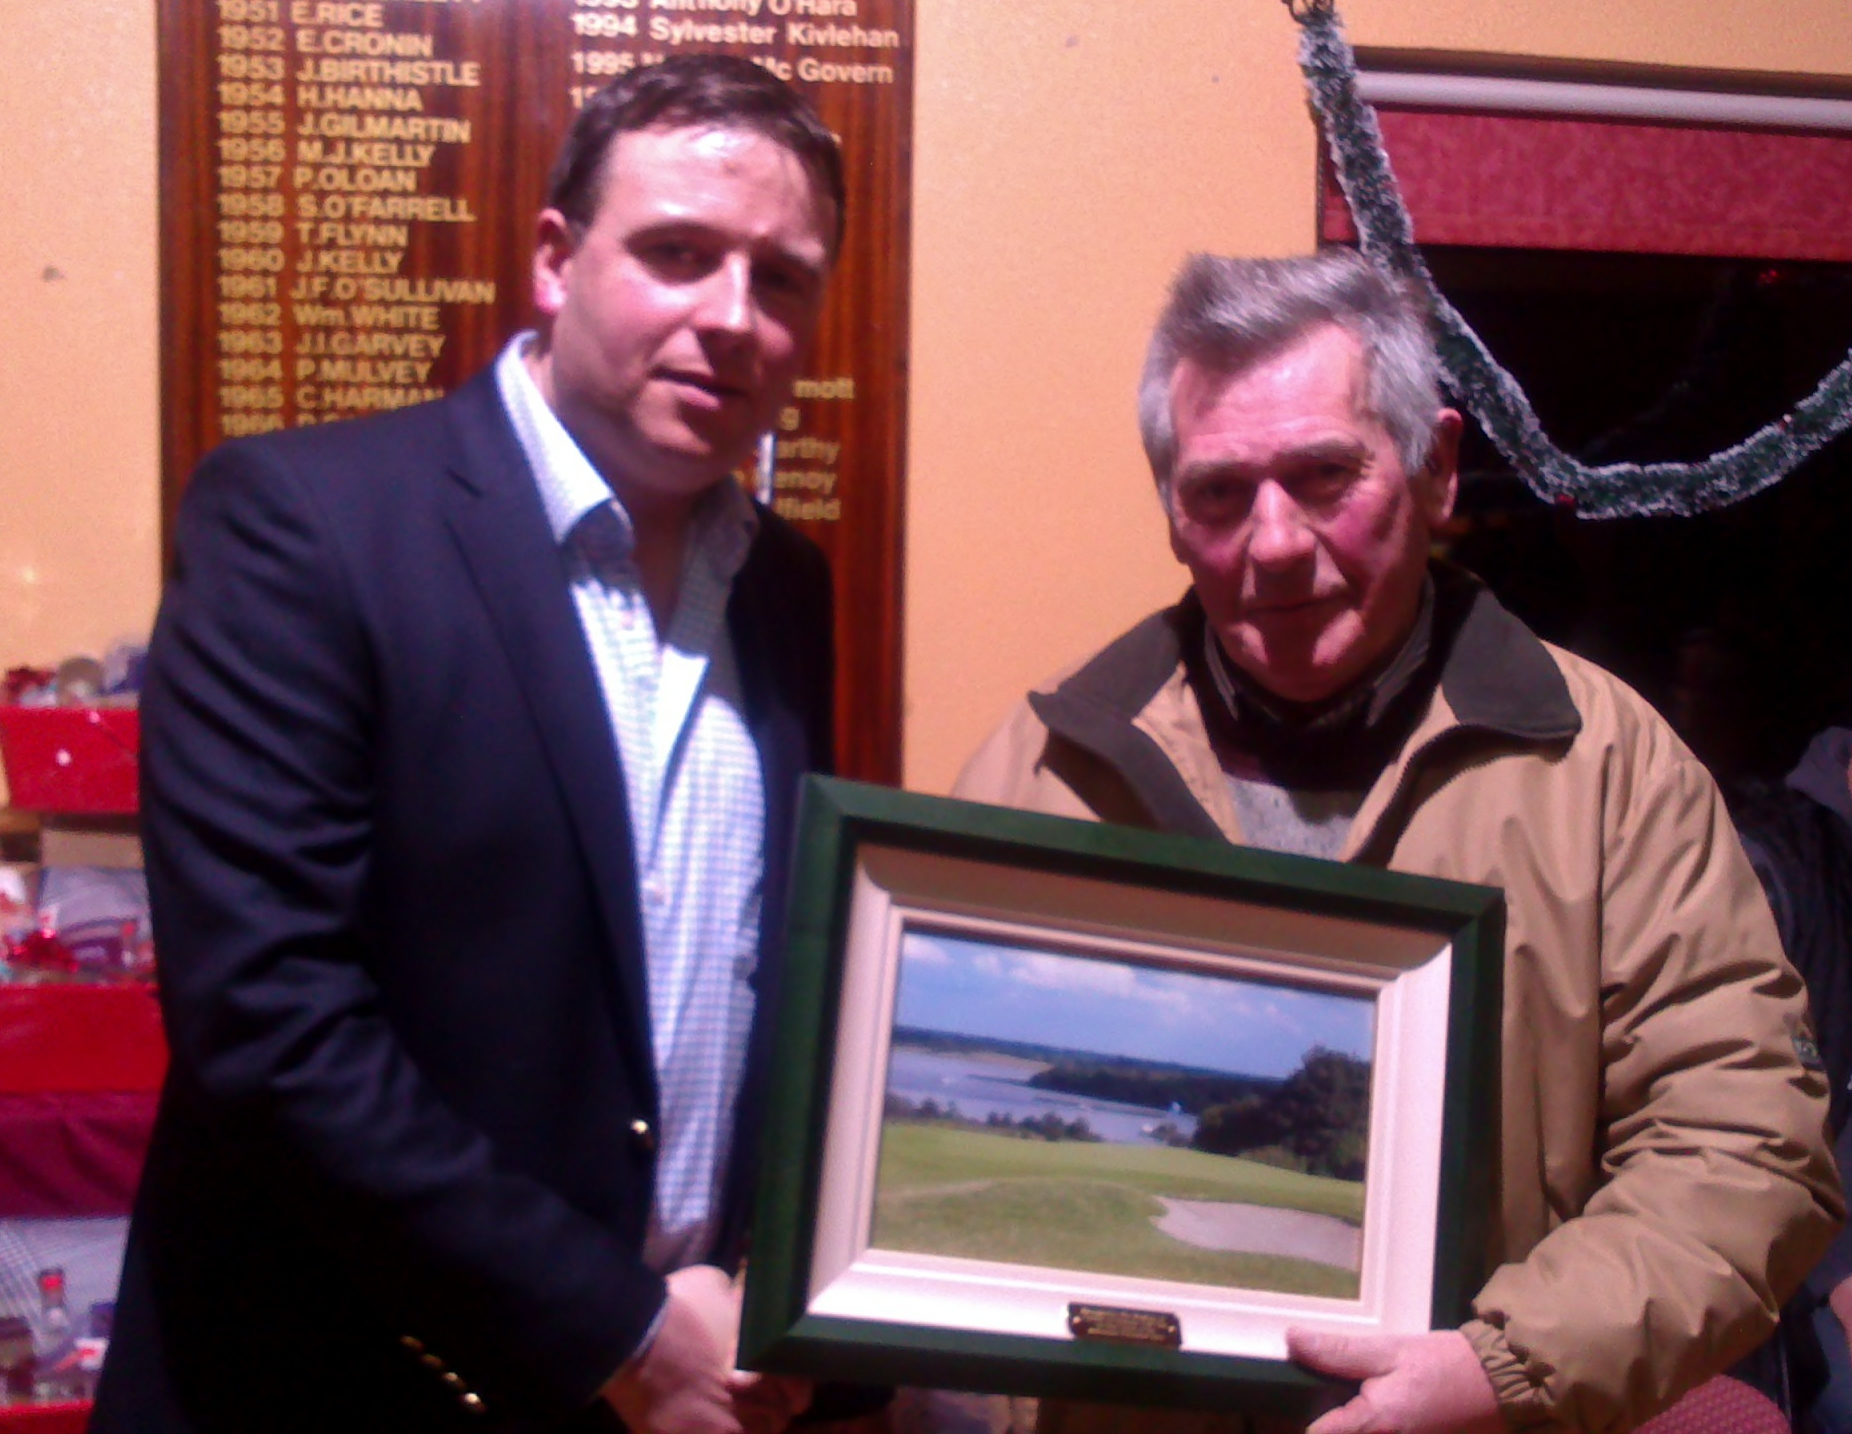 Captain Sean Bohan makes a presentation to Sean Lynch on his retirement after 30 years.